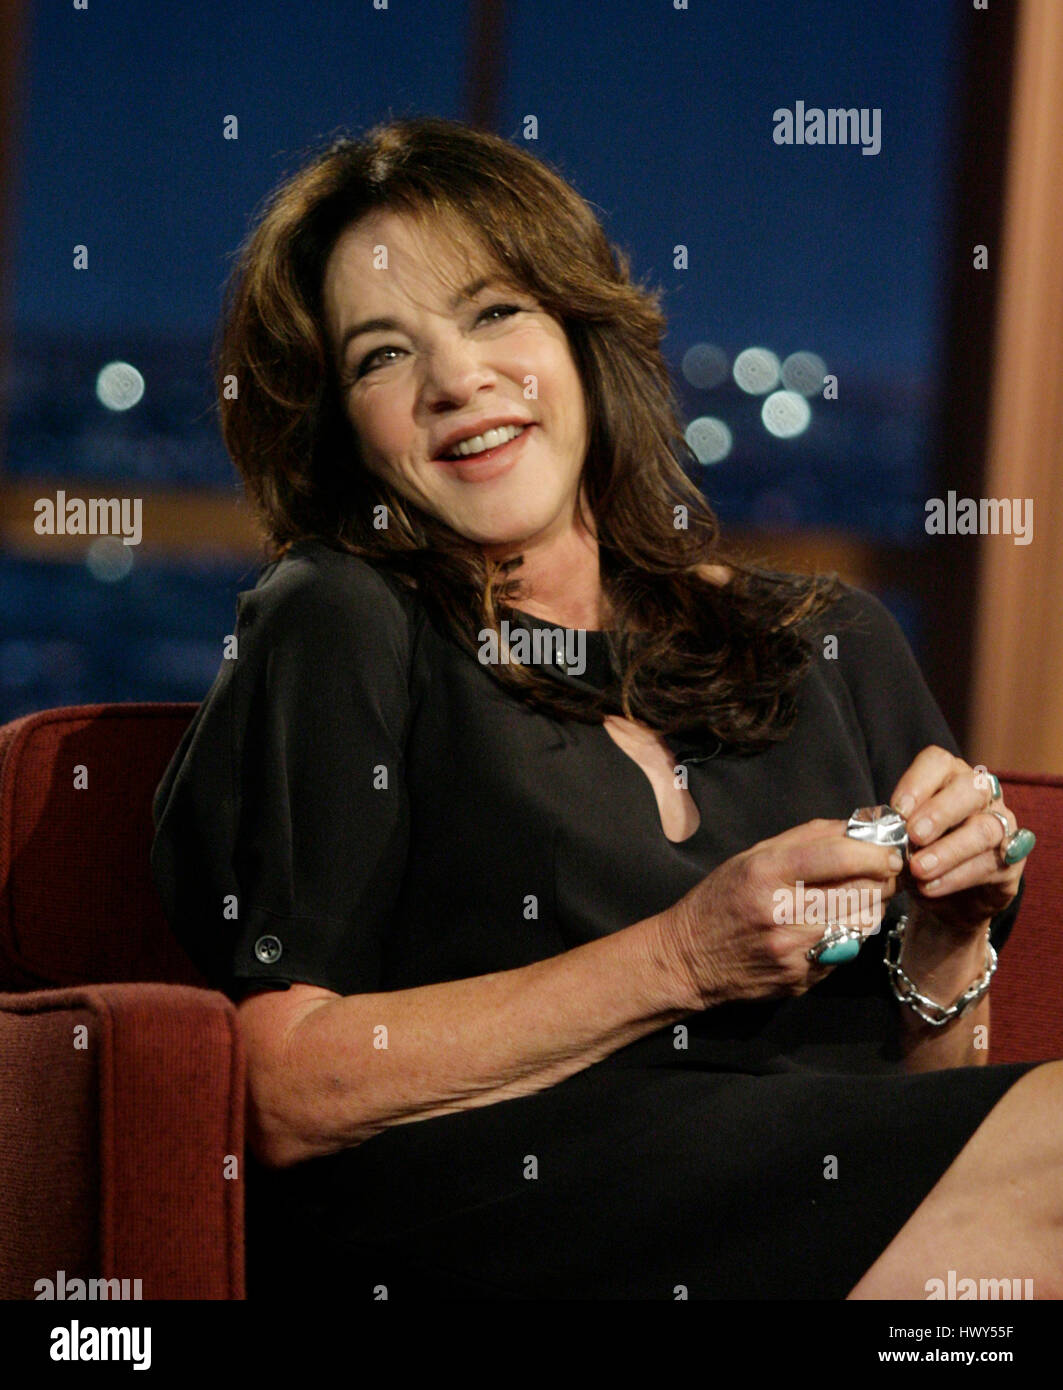 Actress Stockard Channing during a segment of 'The Late Late Show with Craig Ferguson' at CBS Television - Stock Image